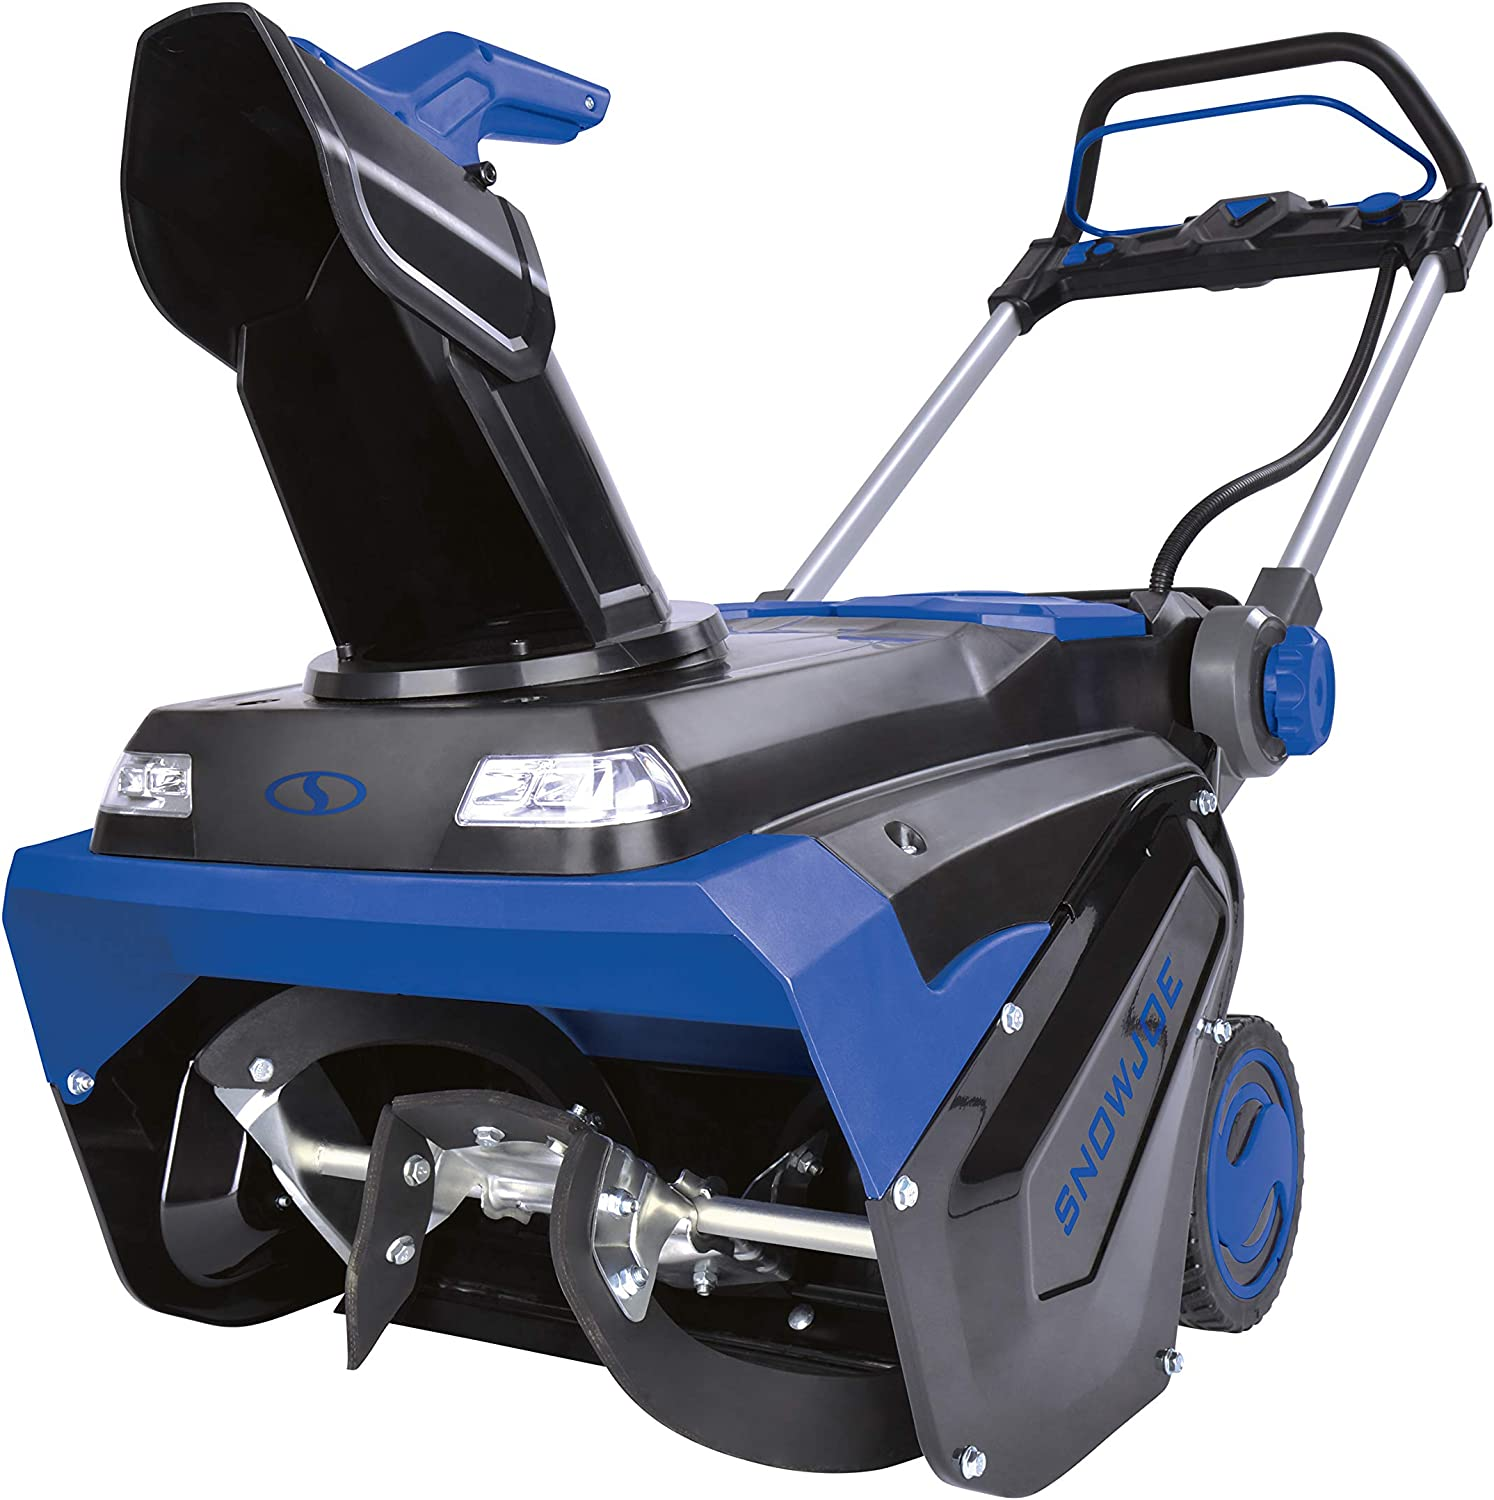 Snow Joe ION100V-21SB-CT 21-Inch 100-Volt Max 5Ah Brushless Lithium-iON Cordless Snowblower, Core Tool (No Battery or Charger)